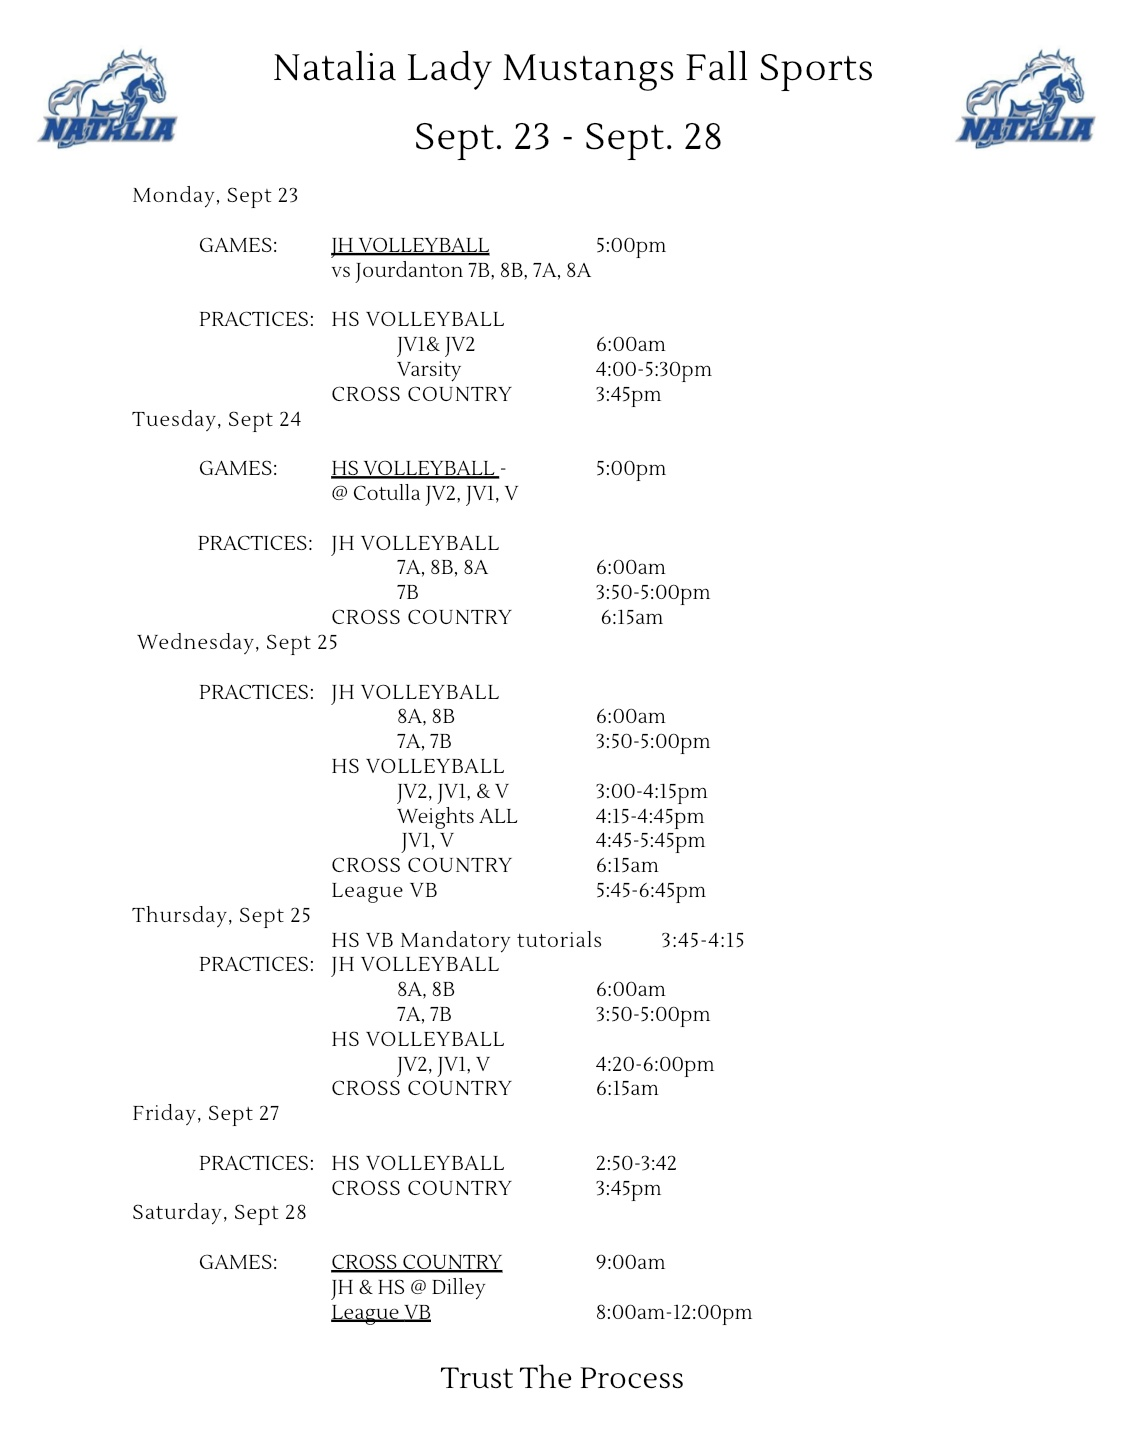 Lady Mustangs Weekly Itinerary 9/23-9/28